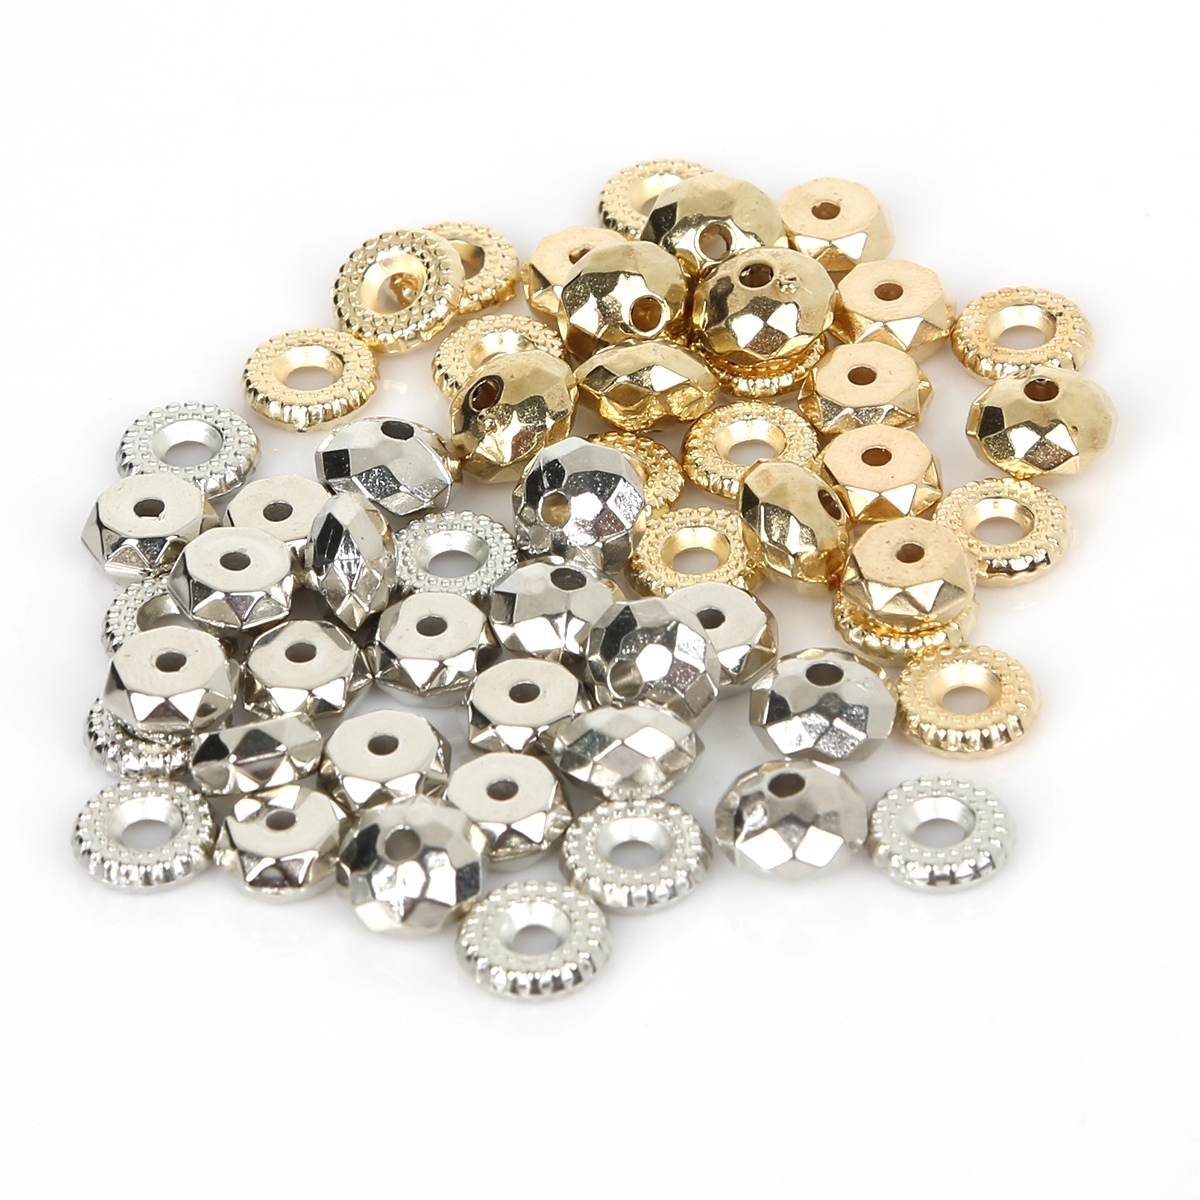 100-500pcs/lot <font><b>5</b></font>-11mm CCB Material Gold Rhodium Spacers Loose Beads Jewelry Findings For <font><b>DIY</b></font> Bracelet Necklace Jewelry Making image